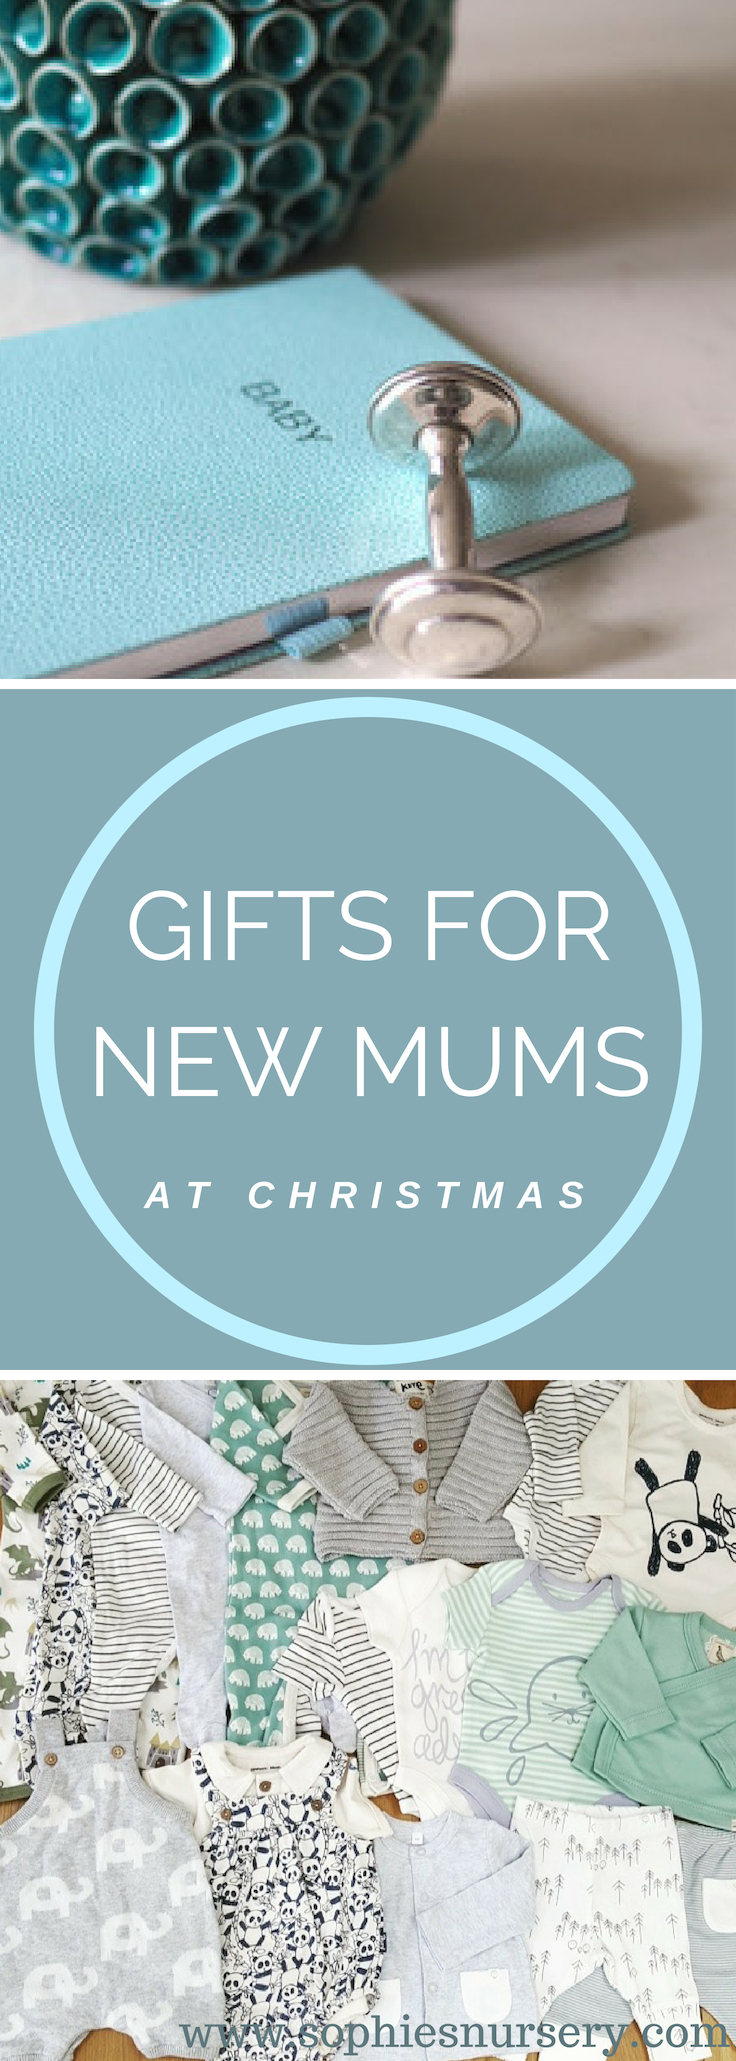 Know someone who has just had a #baby? These gifts for new mums at #Christmas are the perfect mixture of practical & special treats!  #giftguide #giftideas #Christmas2018